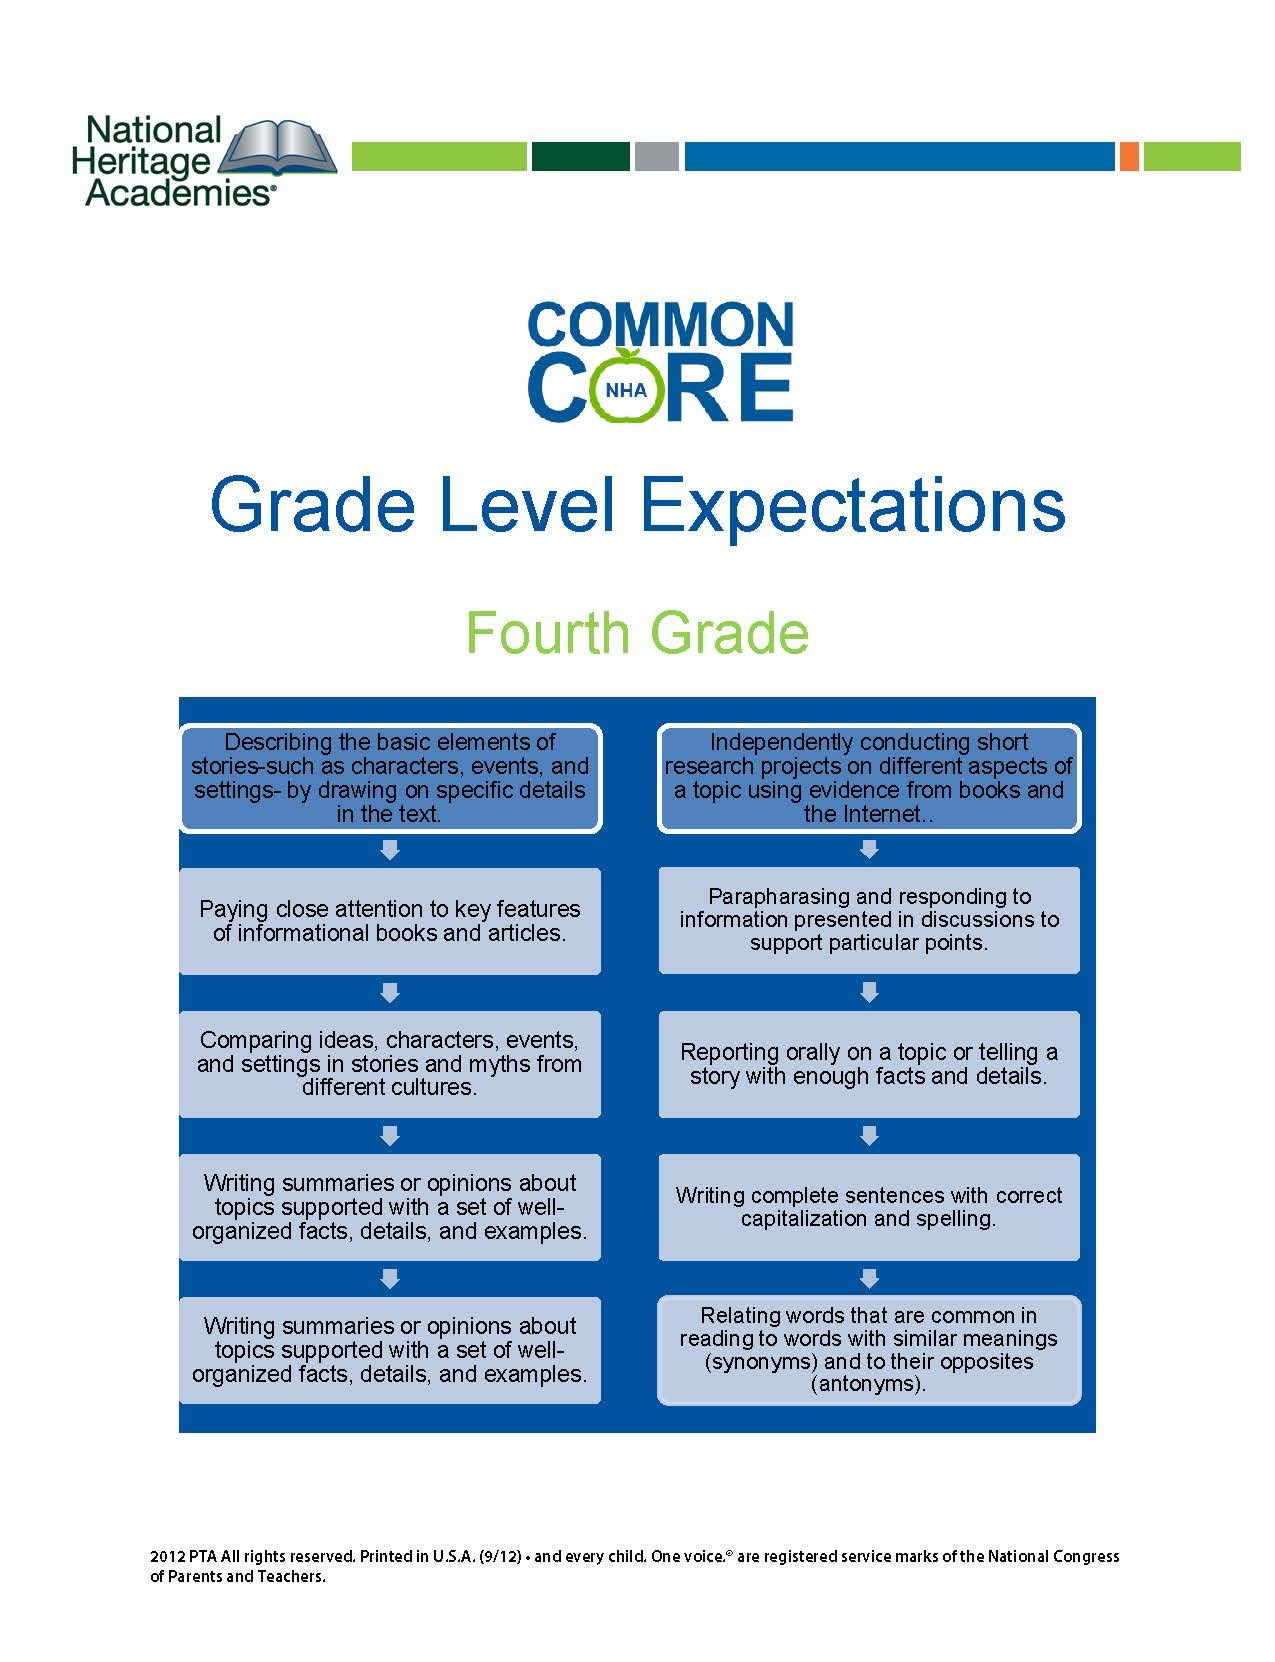 4th Grade Level Common Core Expectations To Learn More About Nha Schools And Common Core Visit Http Common Core Activities Common Core Standards Common Core